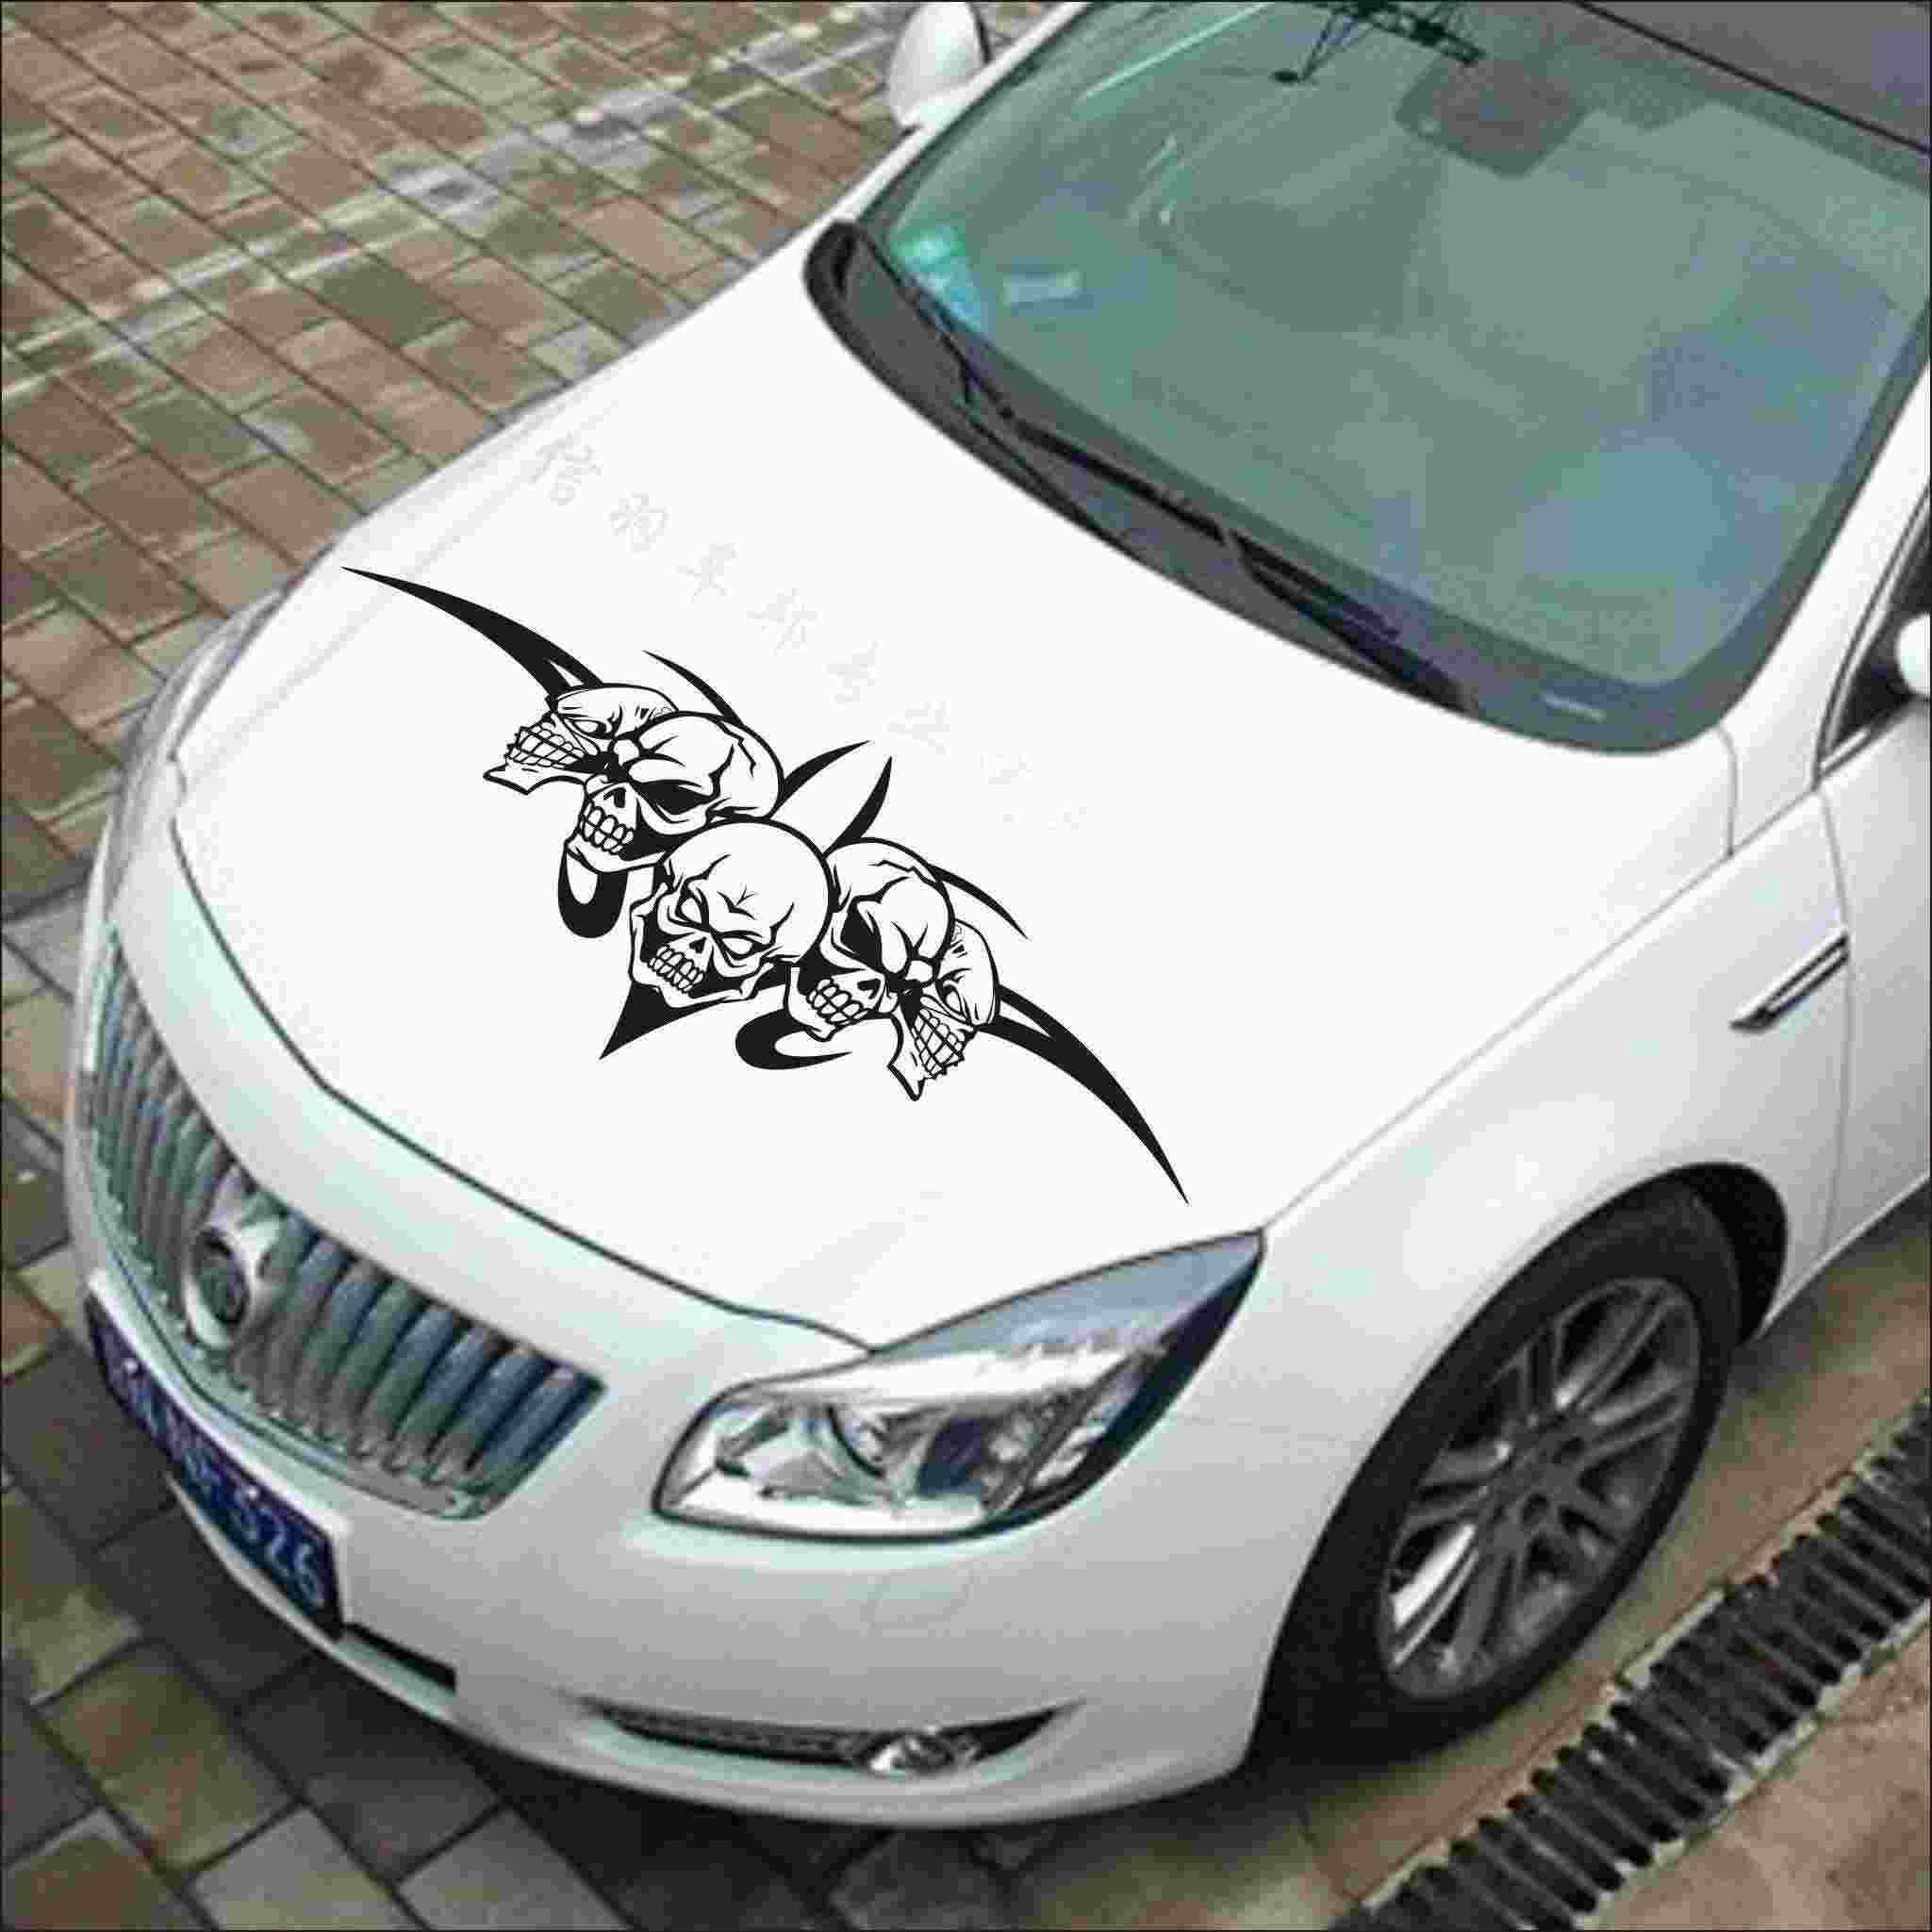 Skull bonnet sticker reflective stickers personalized car stickers modified hood cover car stickers national auto parts